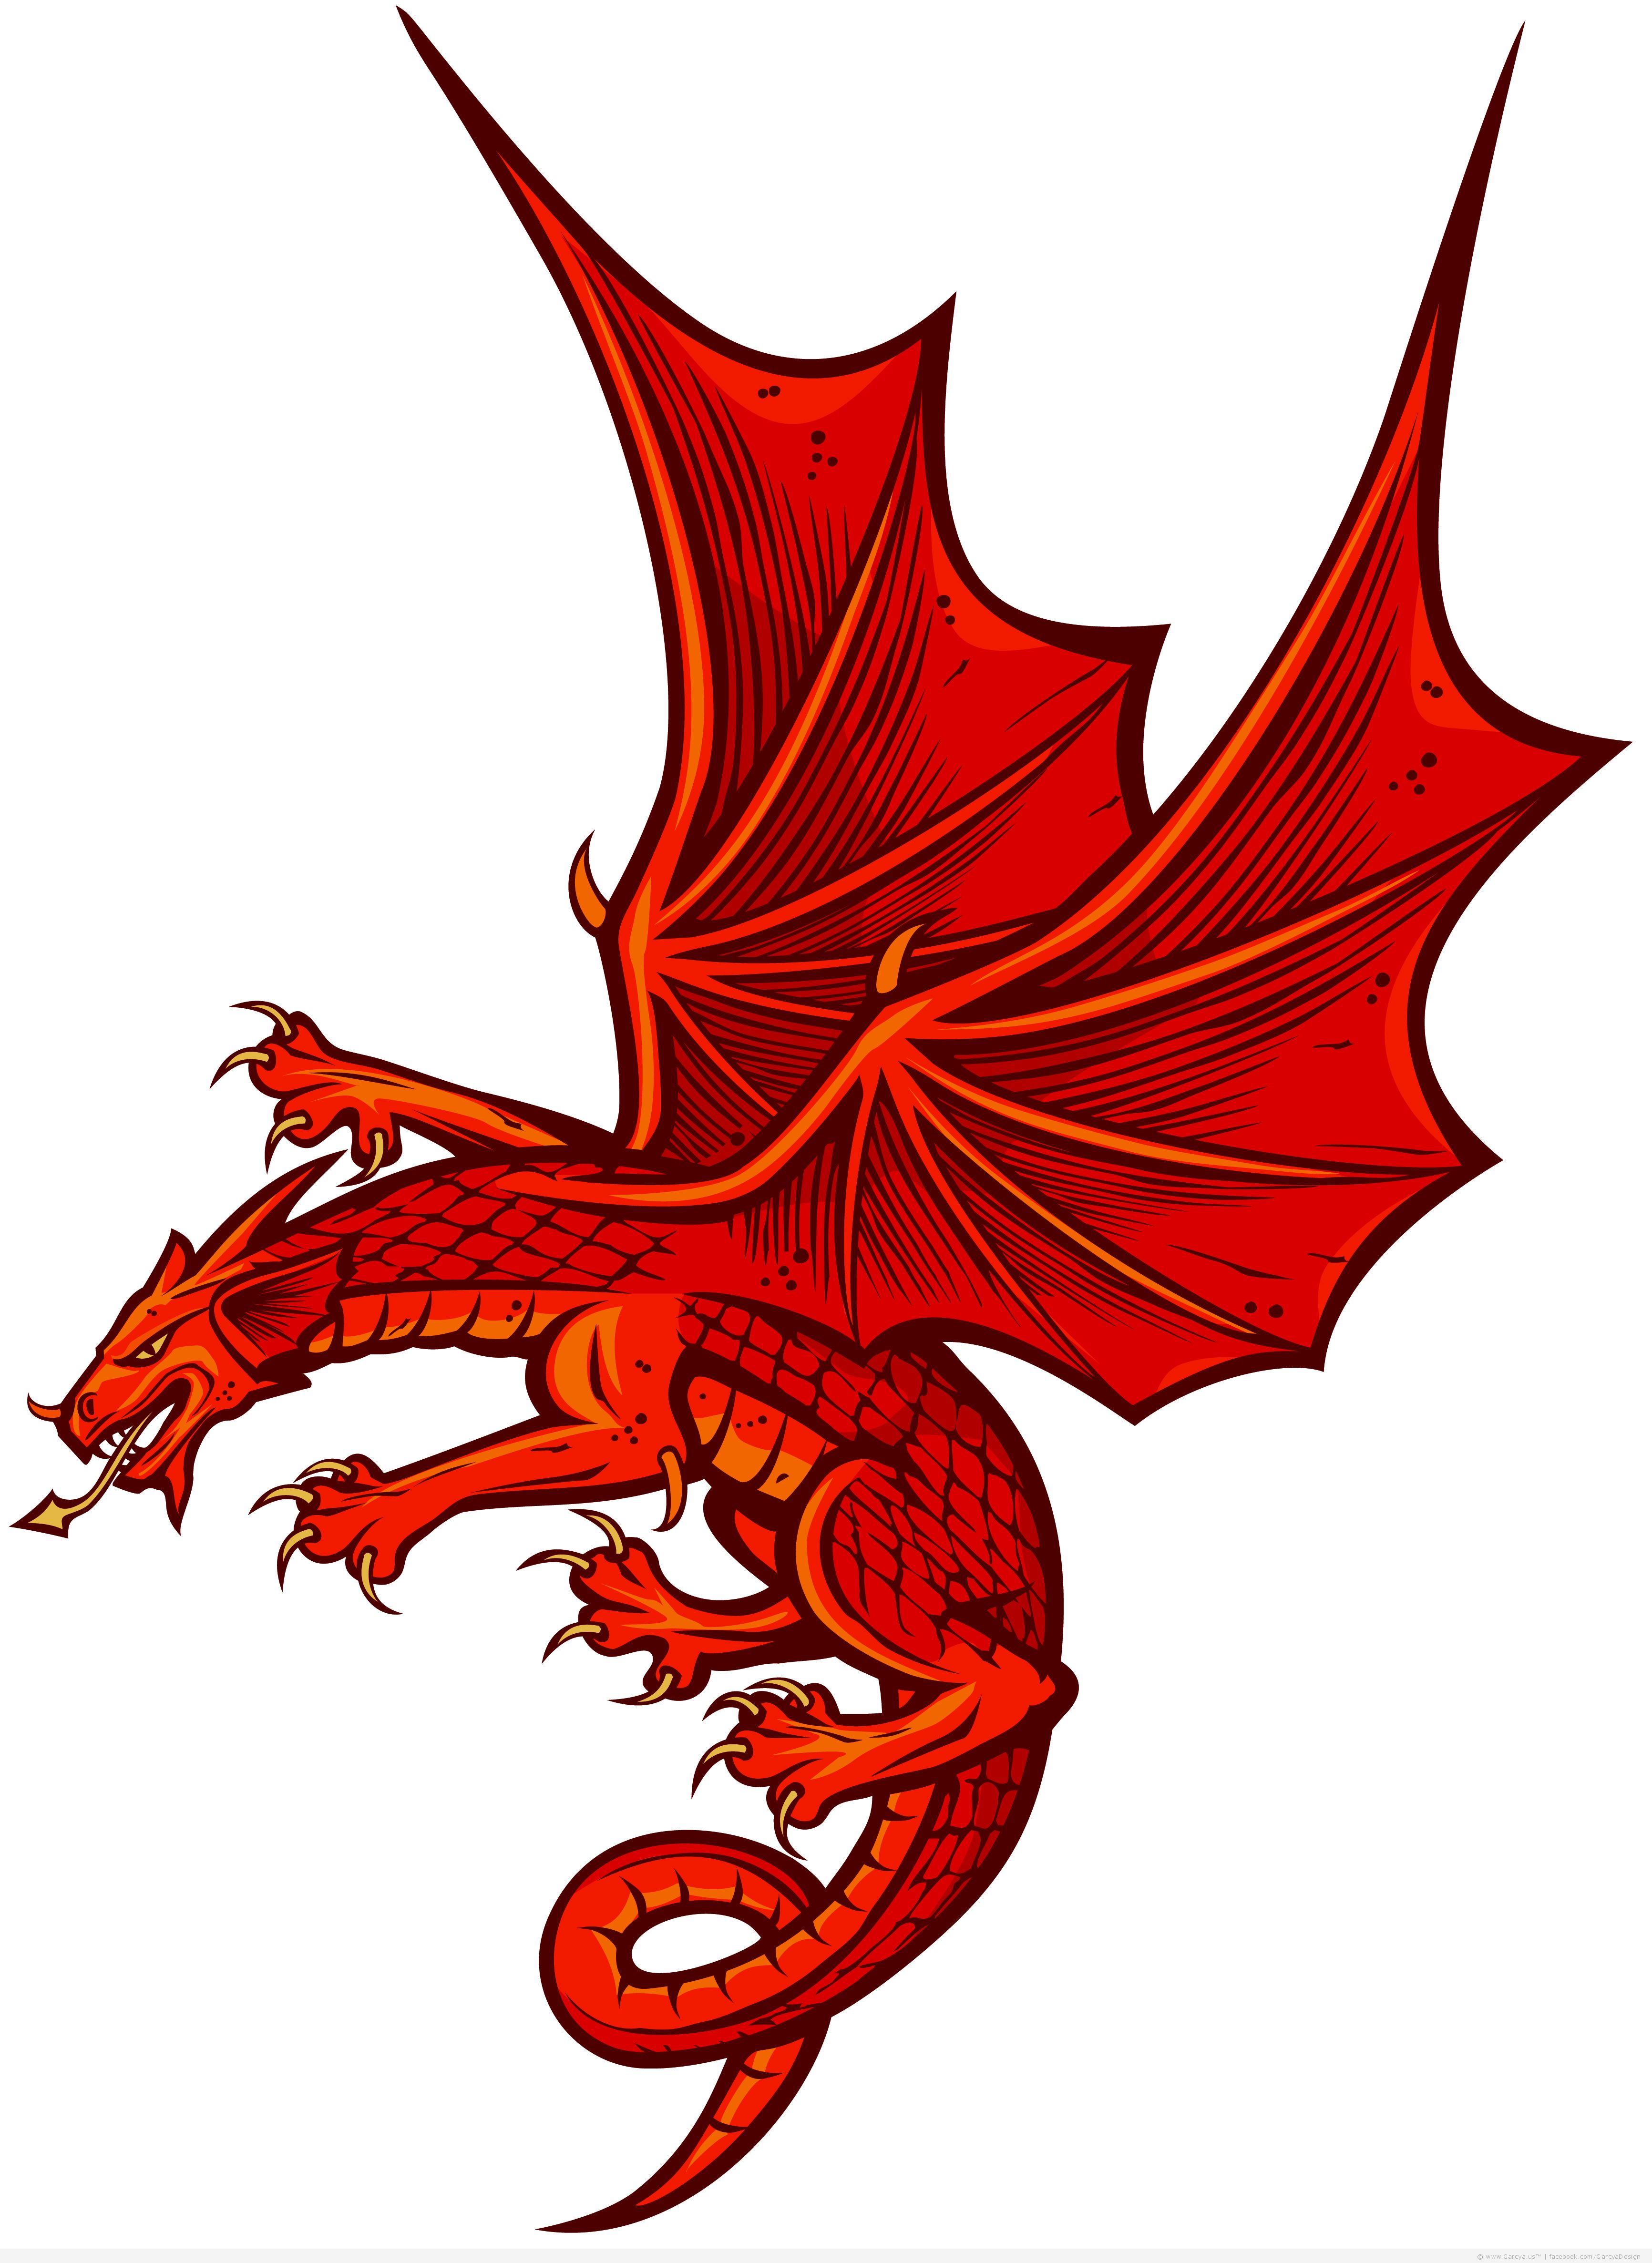 14 Red Dragon Cartoon Vector Images